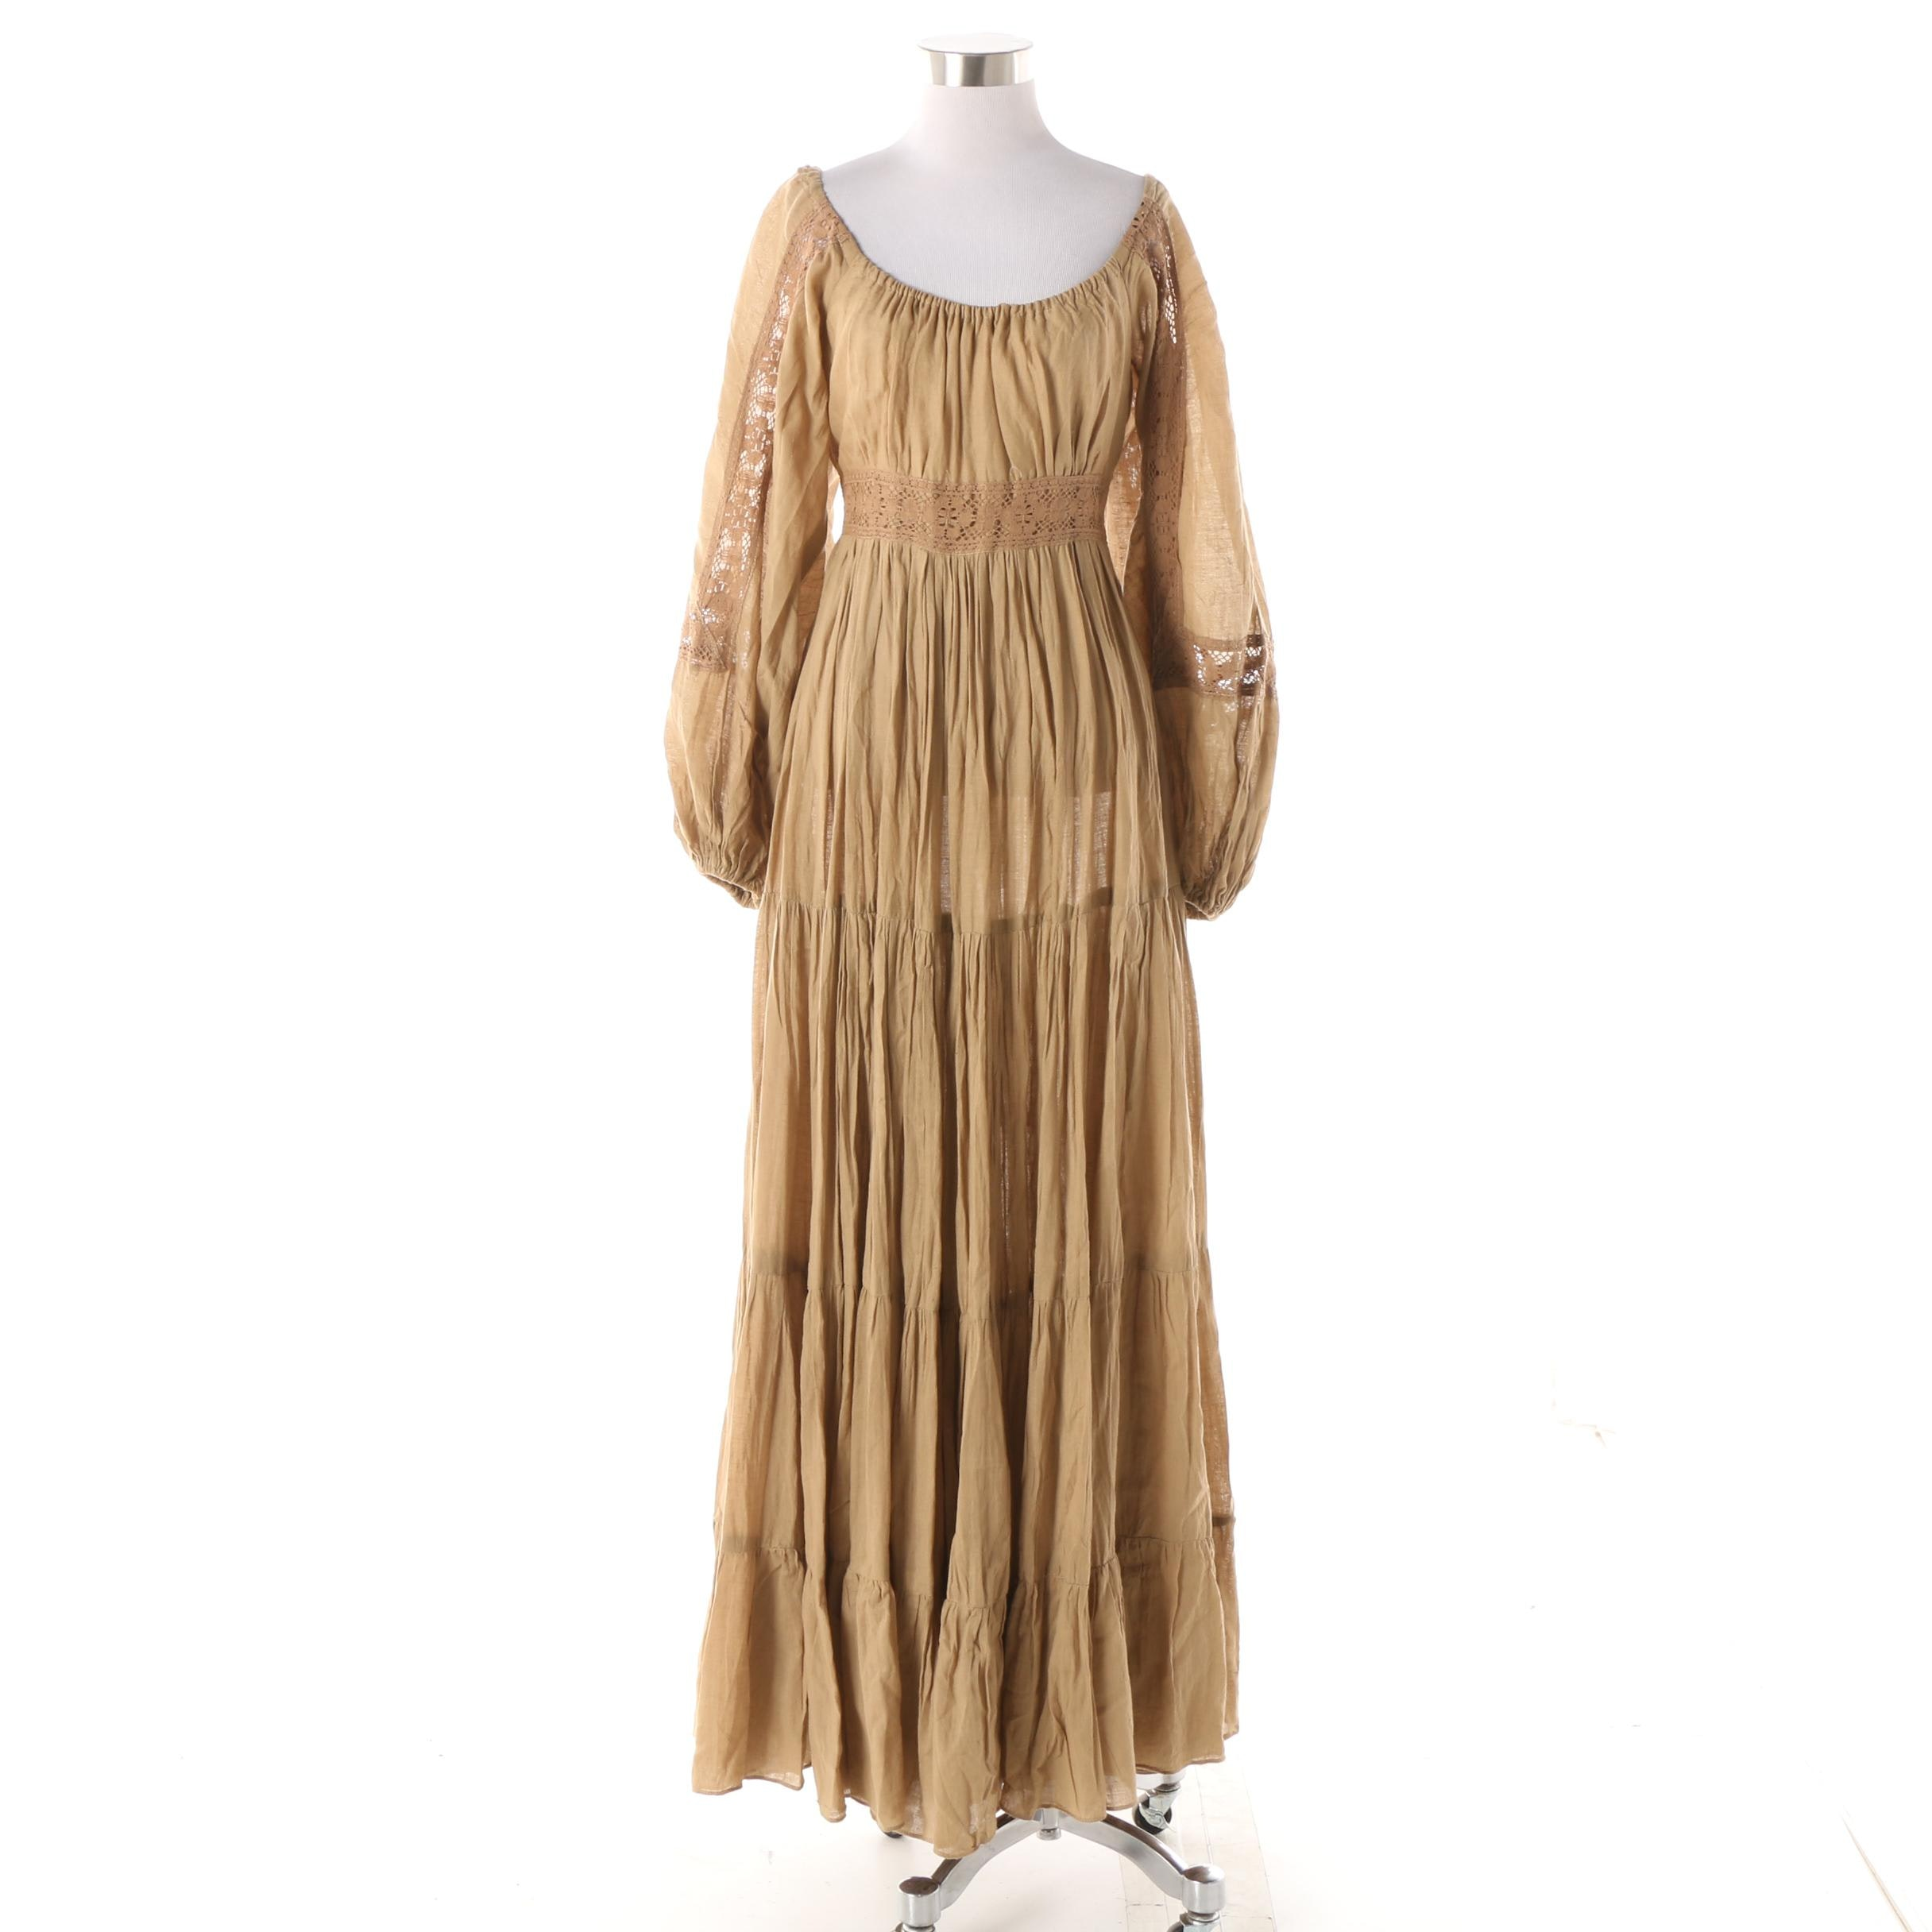 Women's 1980s Vintage Gunne Sax by Jessica McClintock Maxi Dress